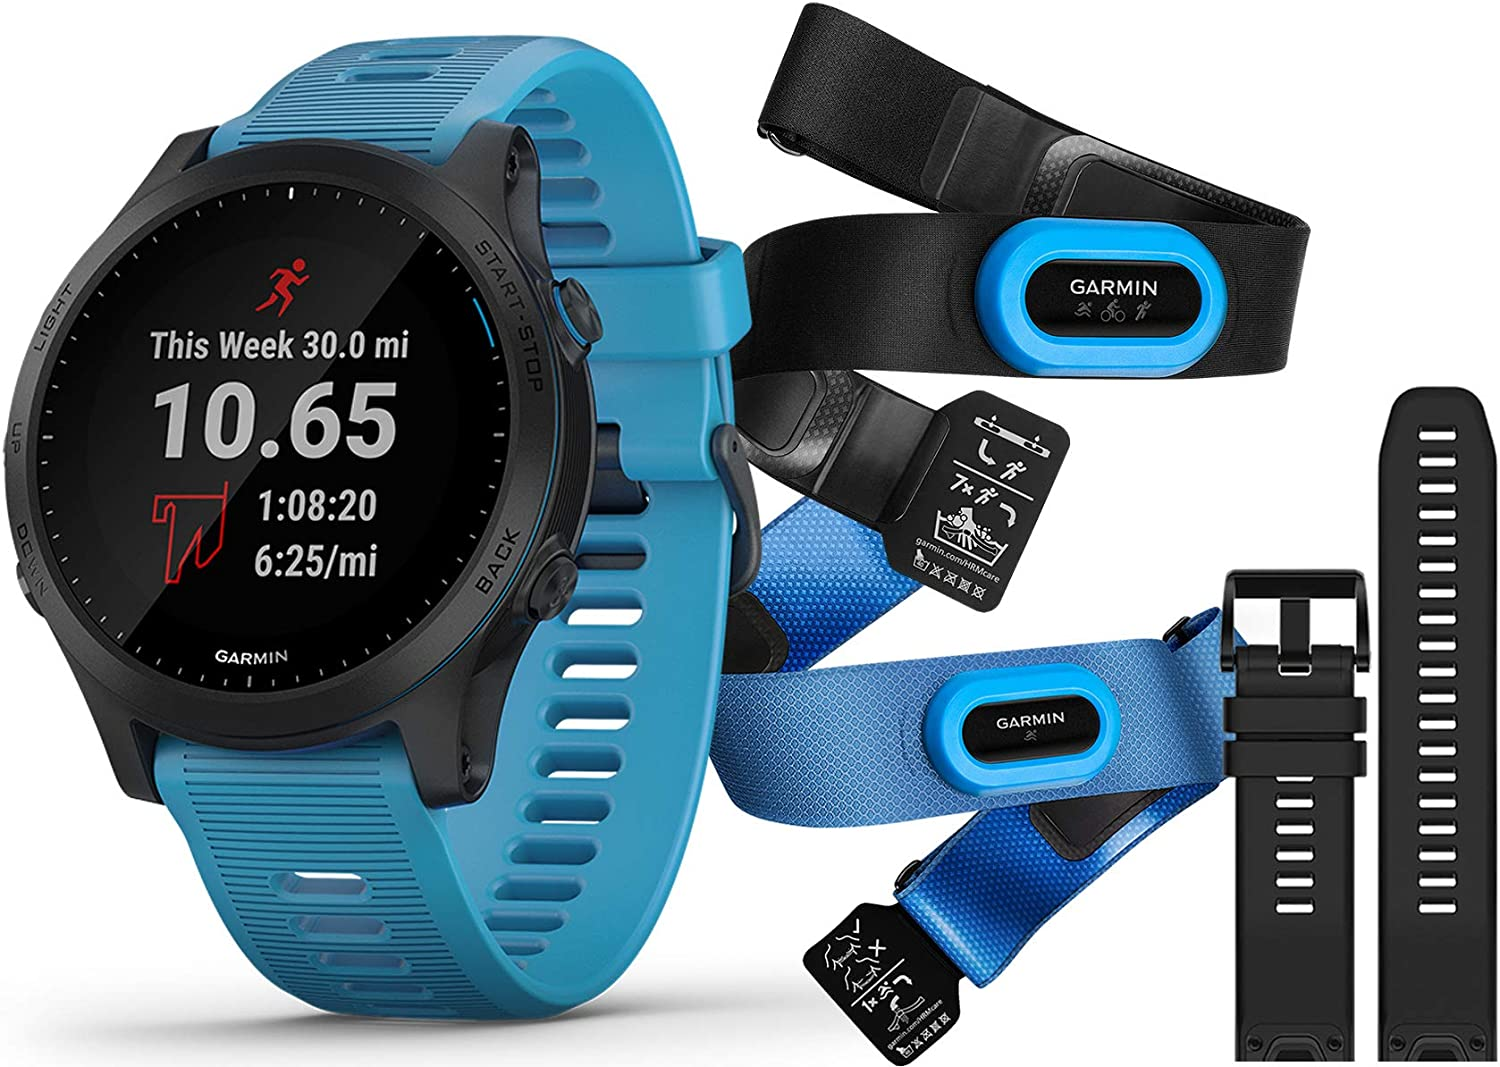 Garmin Forerunner 945 Tri-Bundle Runner s Bundle Includes Garmin Water Bottle, HRM-Tri HRM-Swim Chest Straps, HD Screen Protectors x4 , Watch Bands x2, Blue Black PlayBetter Charger